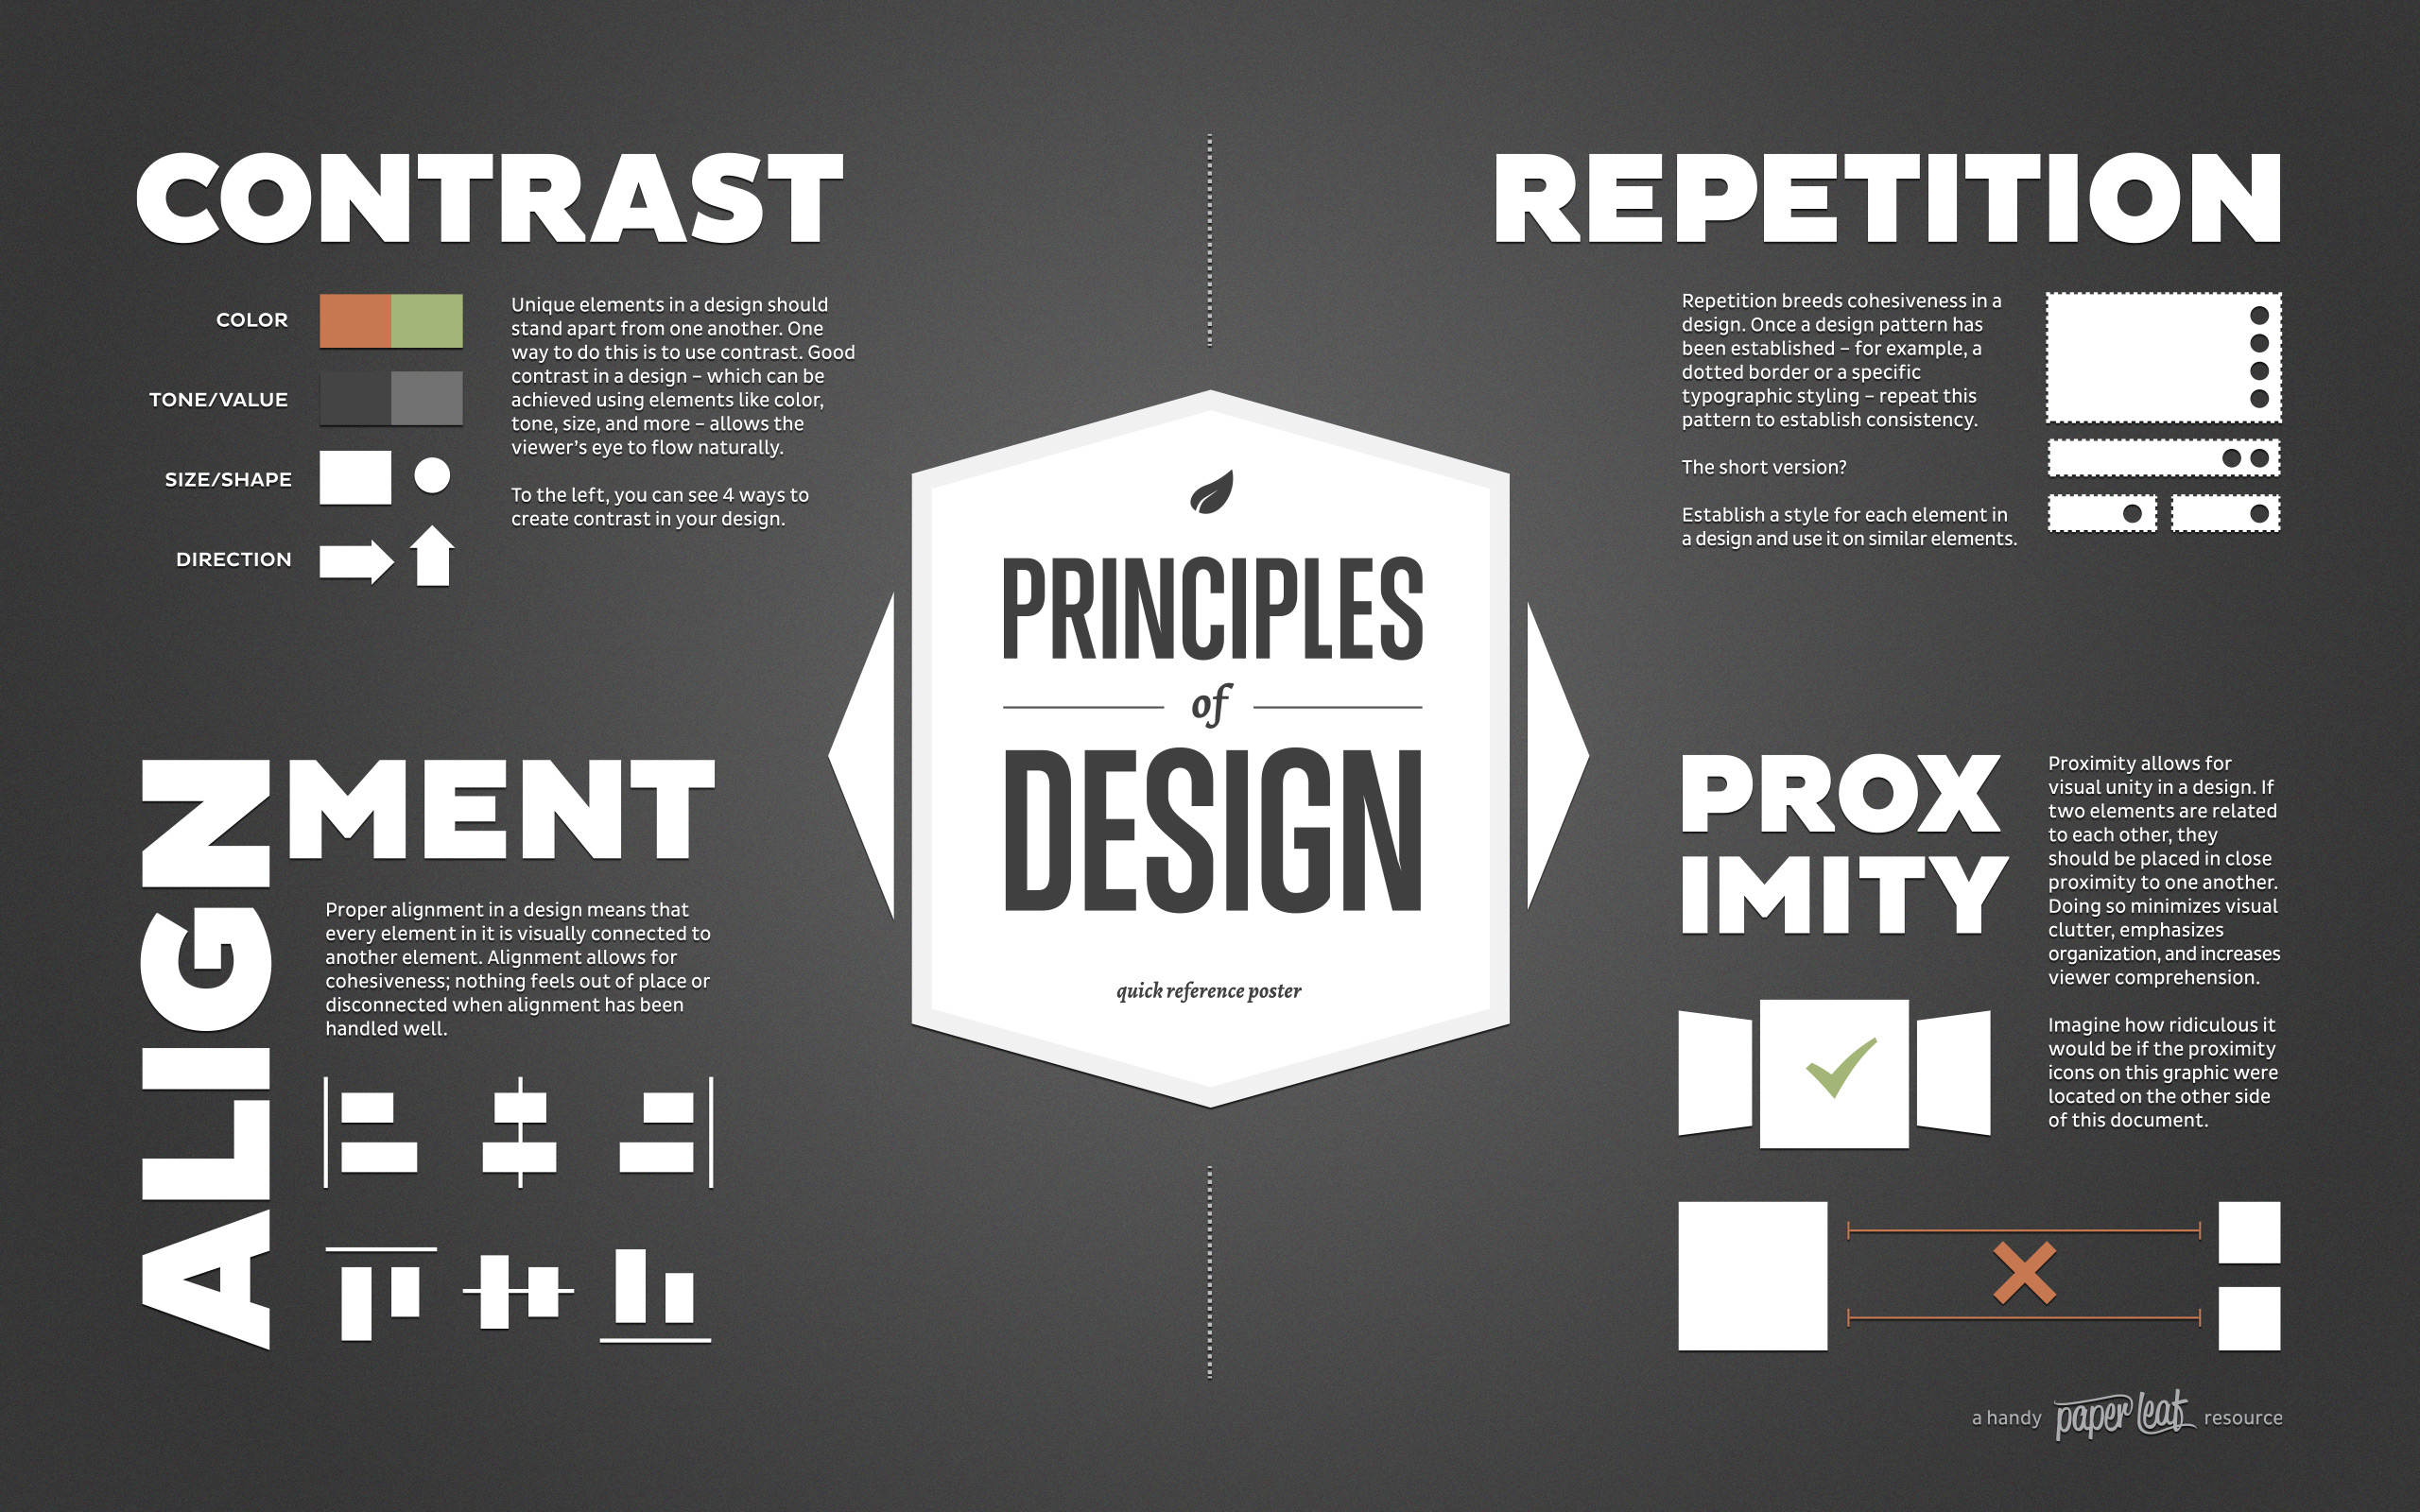 Elements Of Design And Principles Of Design : What makes good design basic elements and principles